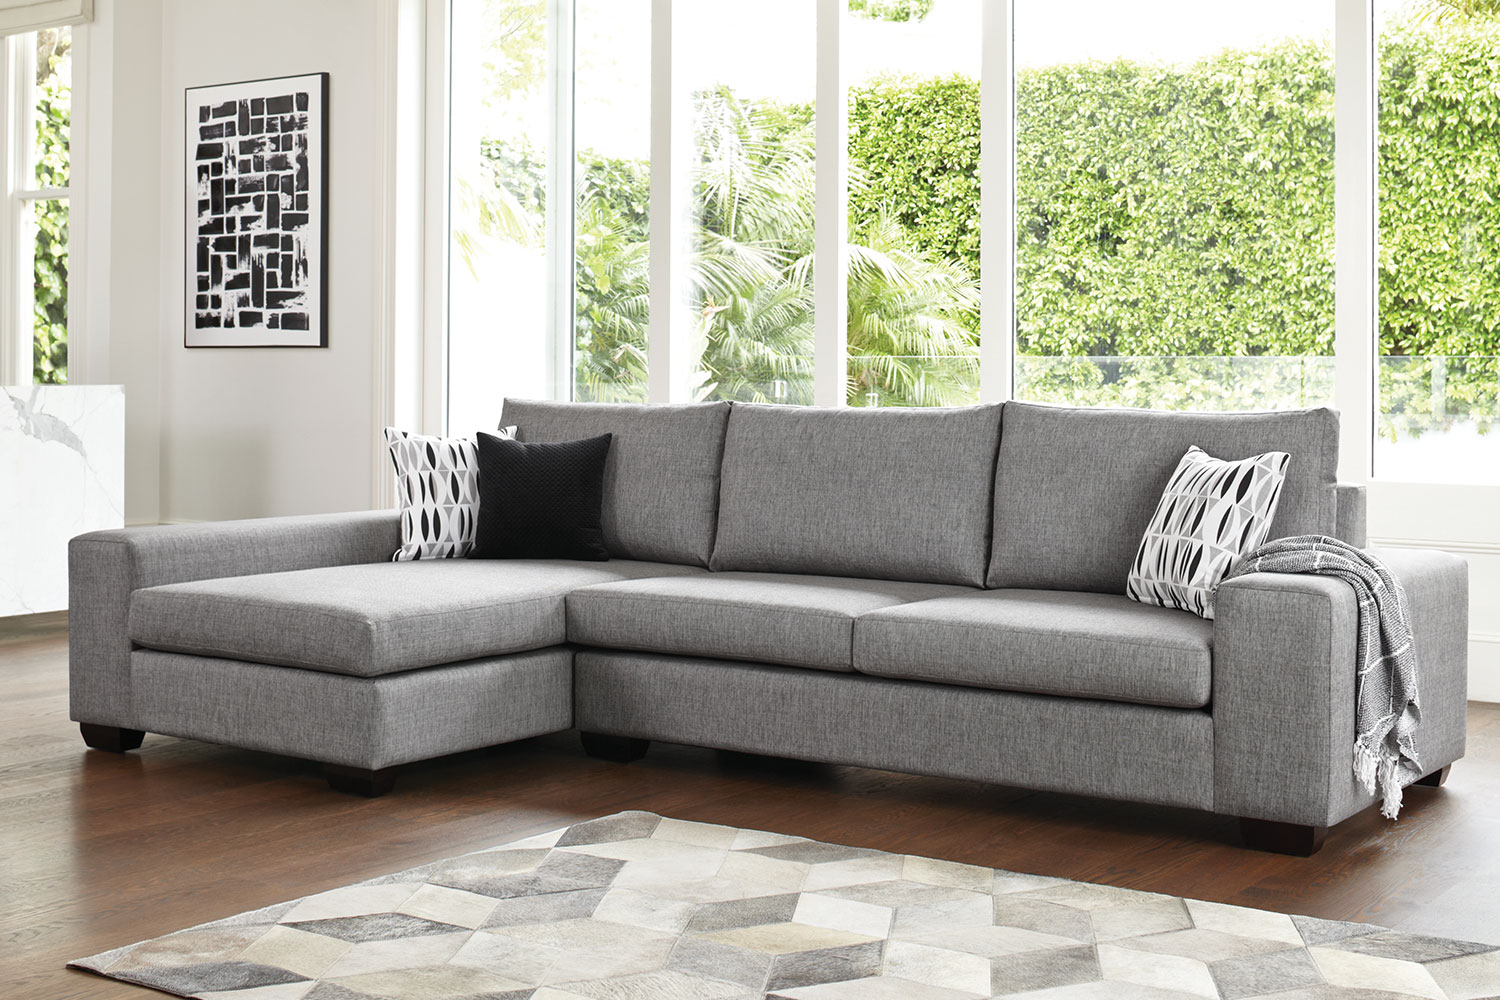 lounging sofa designer leather singapore kingdom 4 seater fabric with chaise by furniture